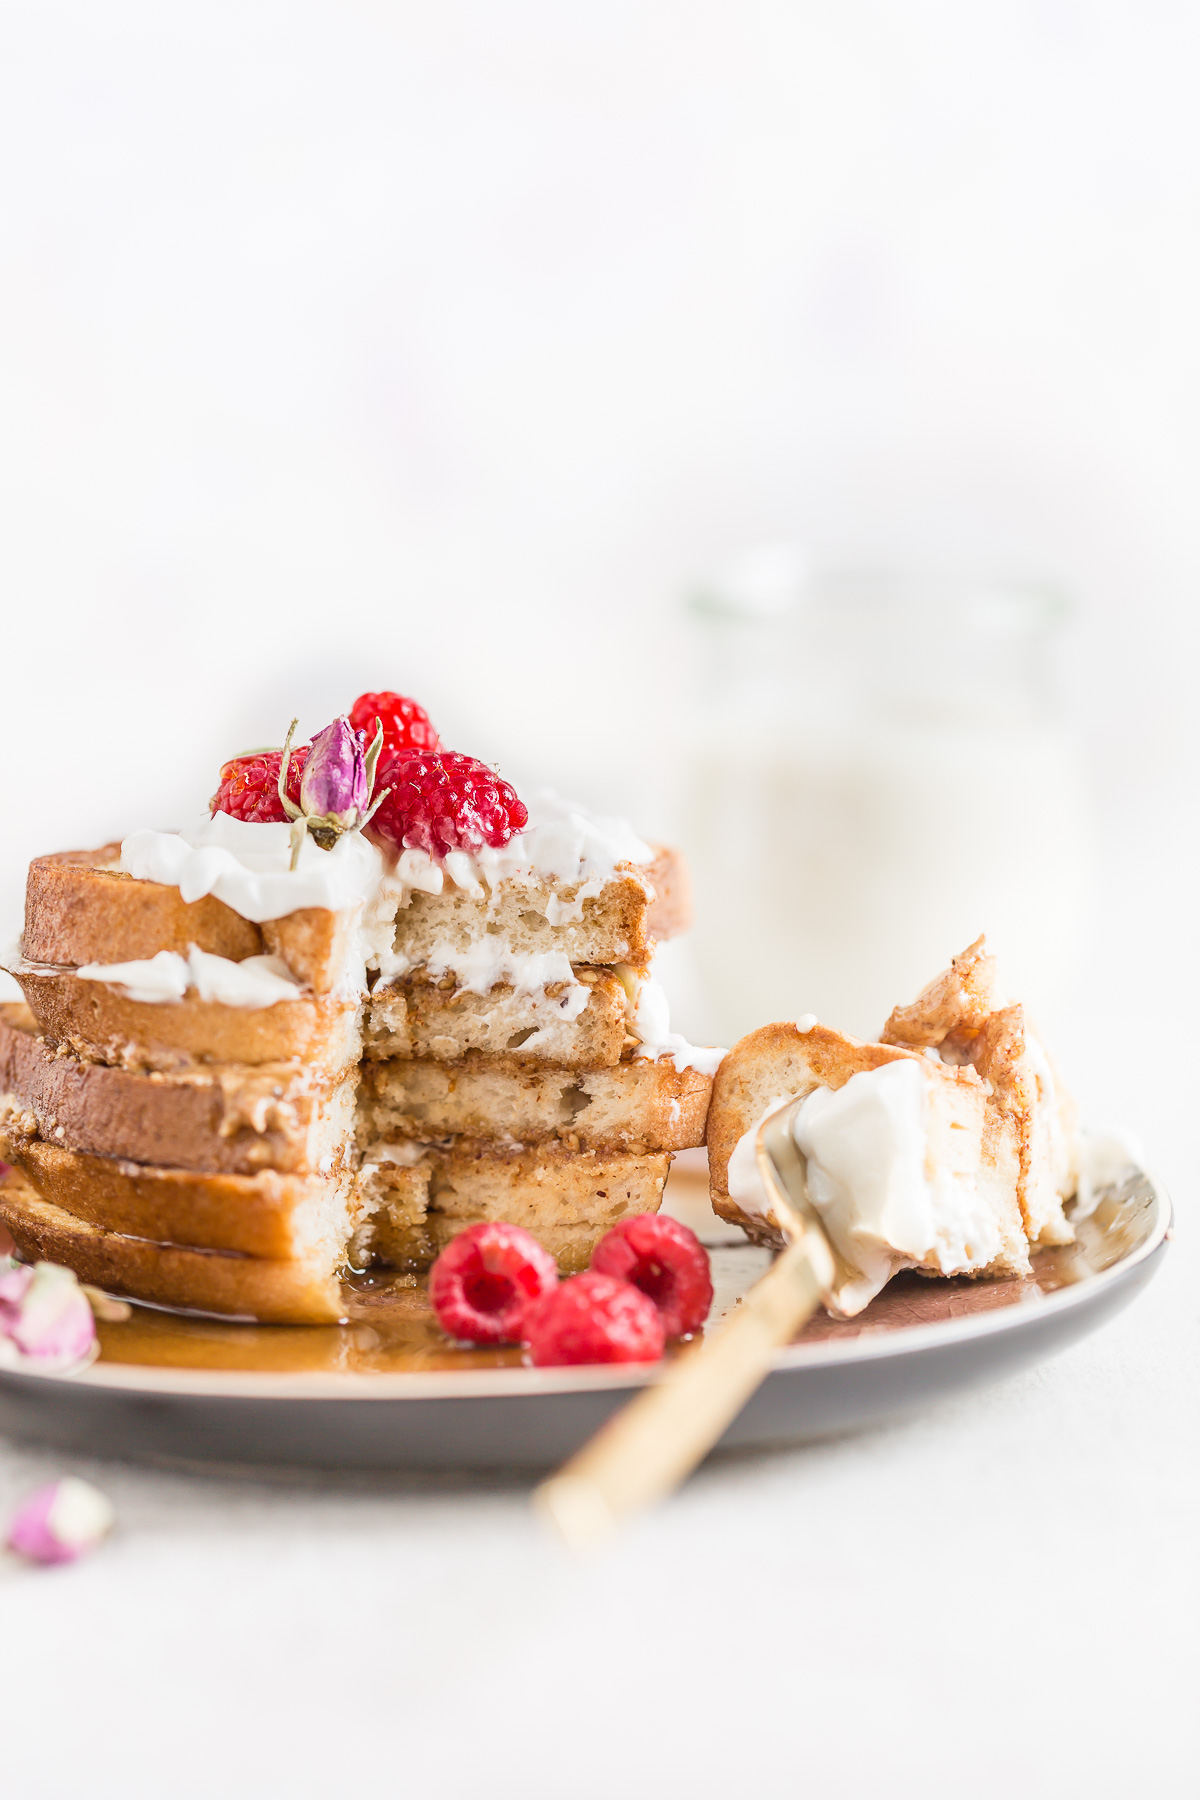 #VEGAN #glutenfree FRENCH TOAST recipe with vanilla and coconut whipped cream - ricetta FRENCH TOAST vegan #senzaglutine alla vaniglia in padella e al forno 2